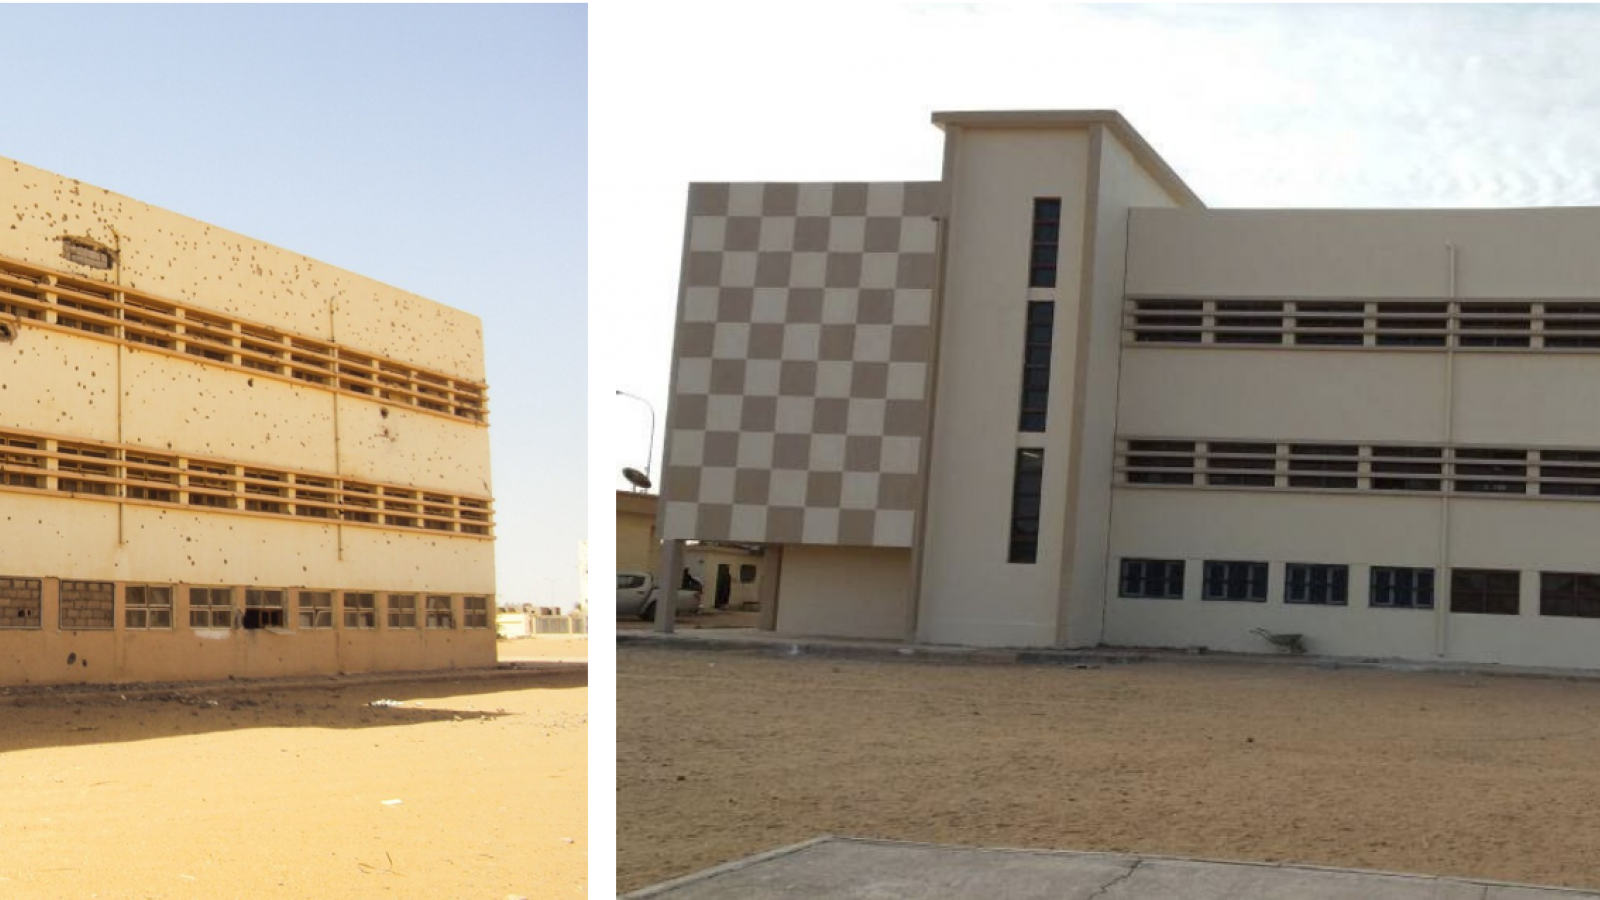 Alqurania School in Ubari before and after renovation. Photos by Ali Alshareef/ ©UNDP Libya